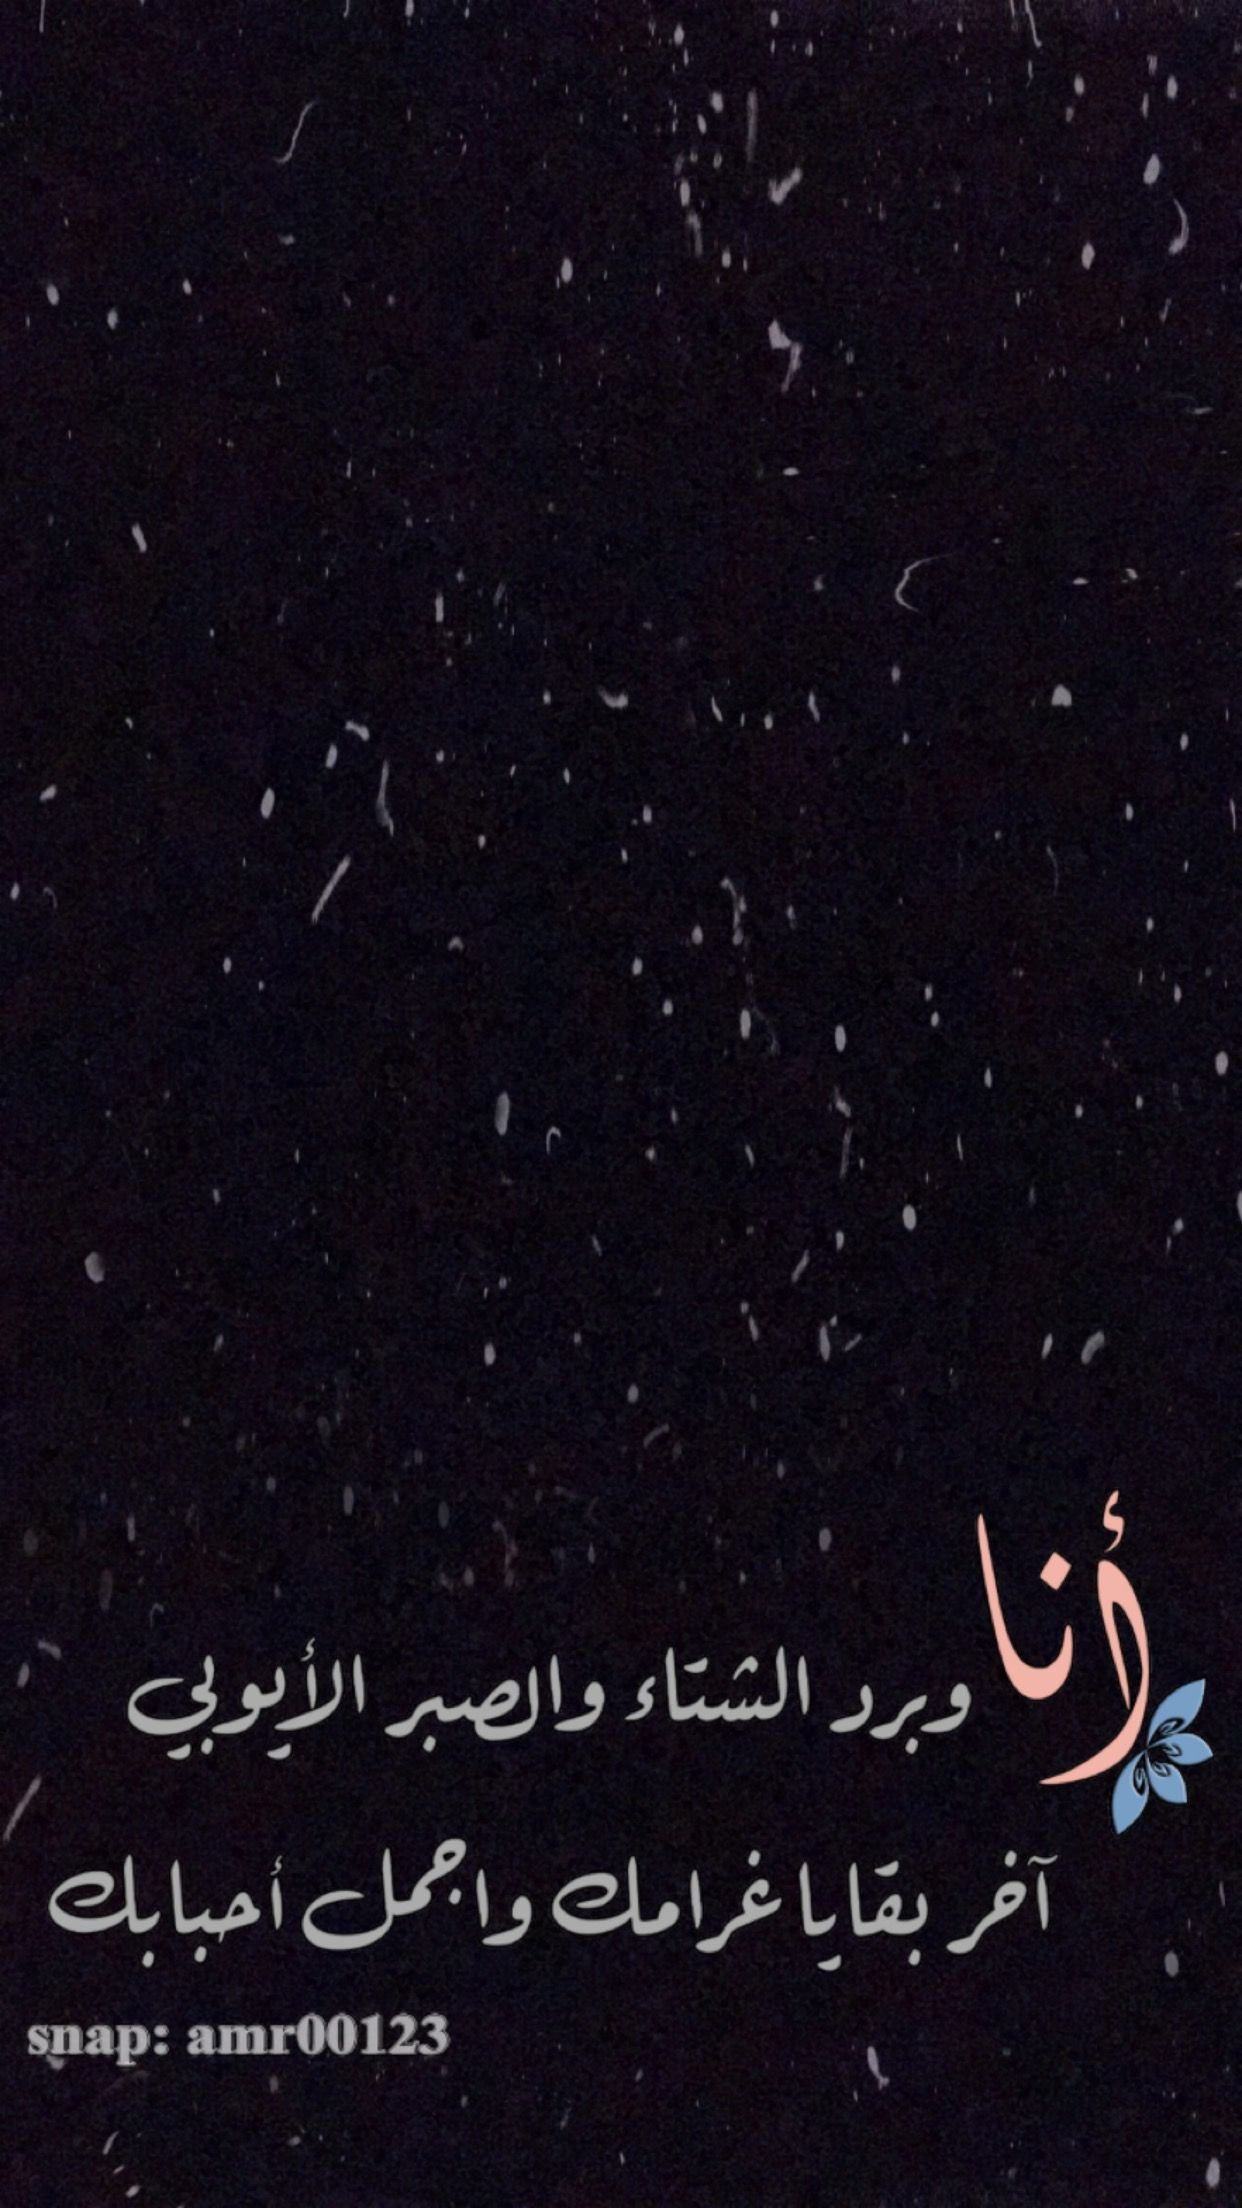 Pin By Moona Alattes On صوري Arabic Arabic Calligraphy